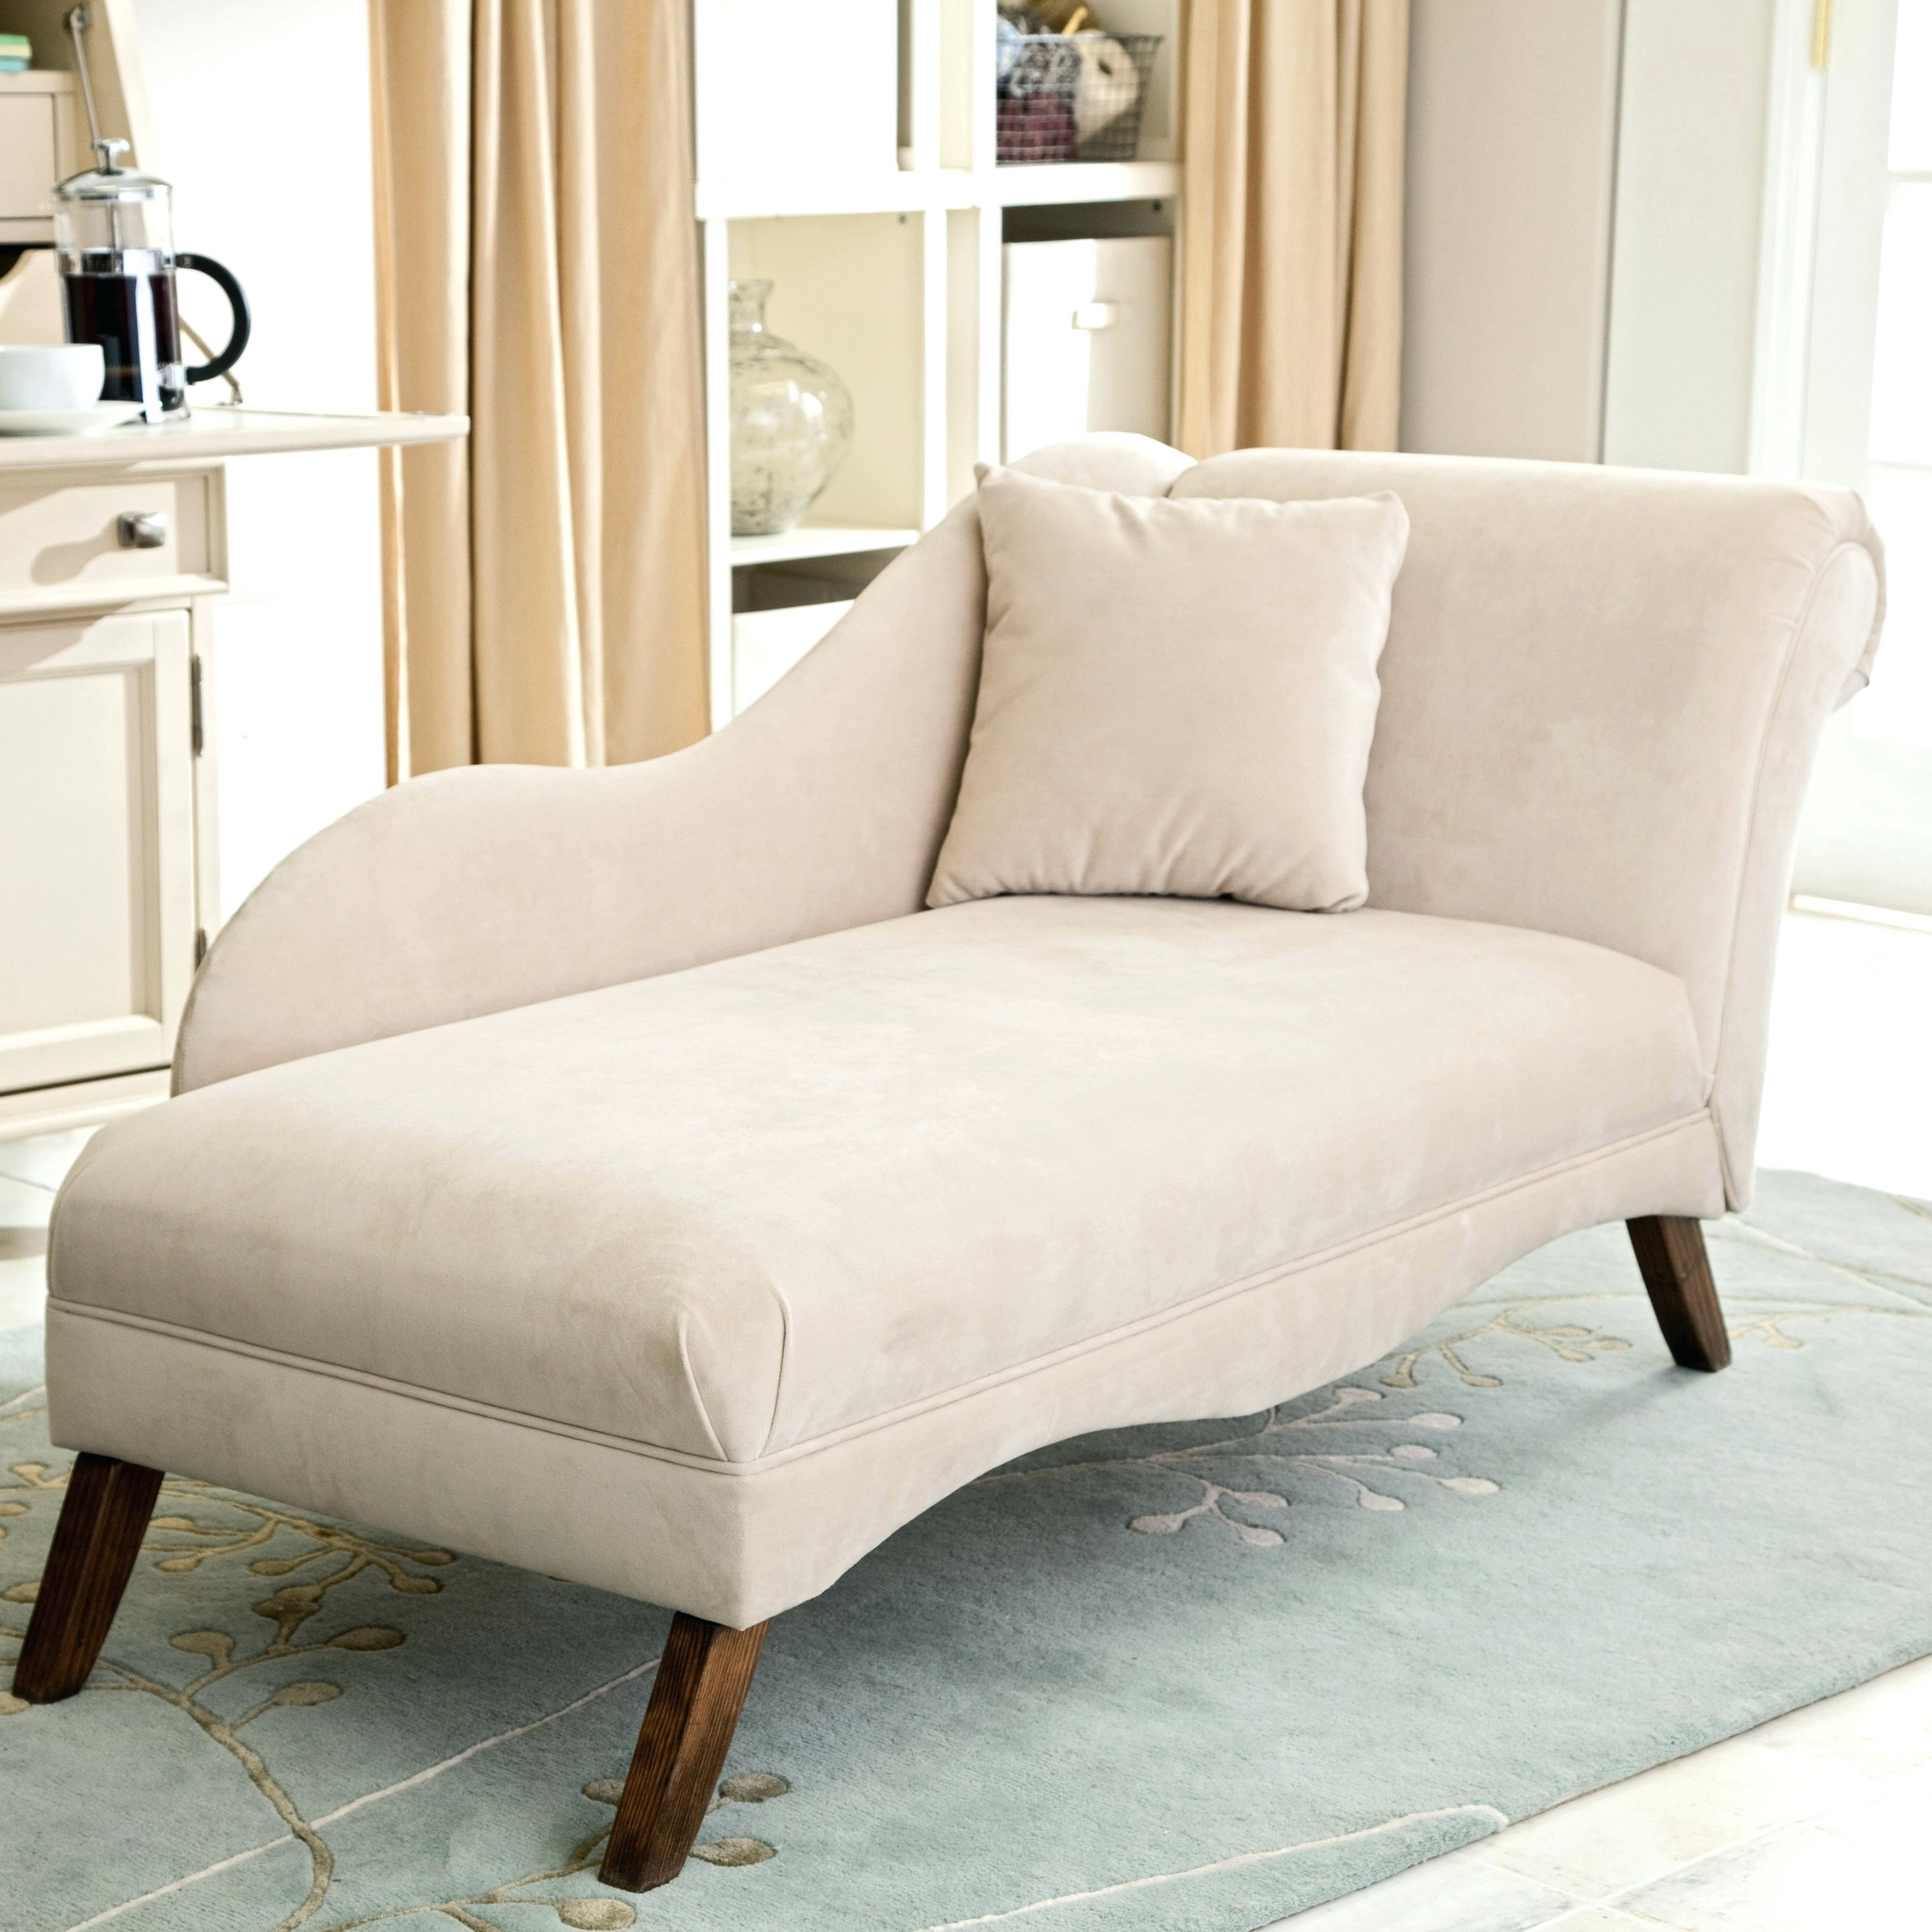 Bedroom Chaise Lounge Chairs Within Current Upholstered Chaise Lounge Chairs • Lounge Chairs Ideas (View 5 of 15)